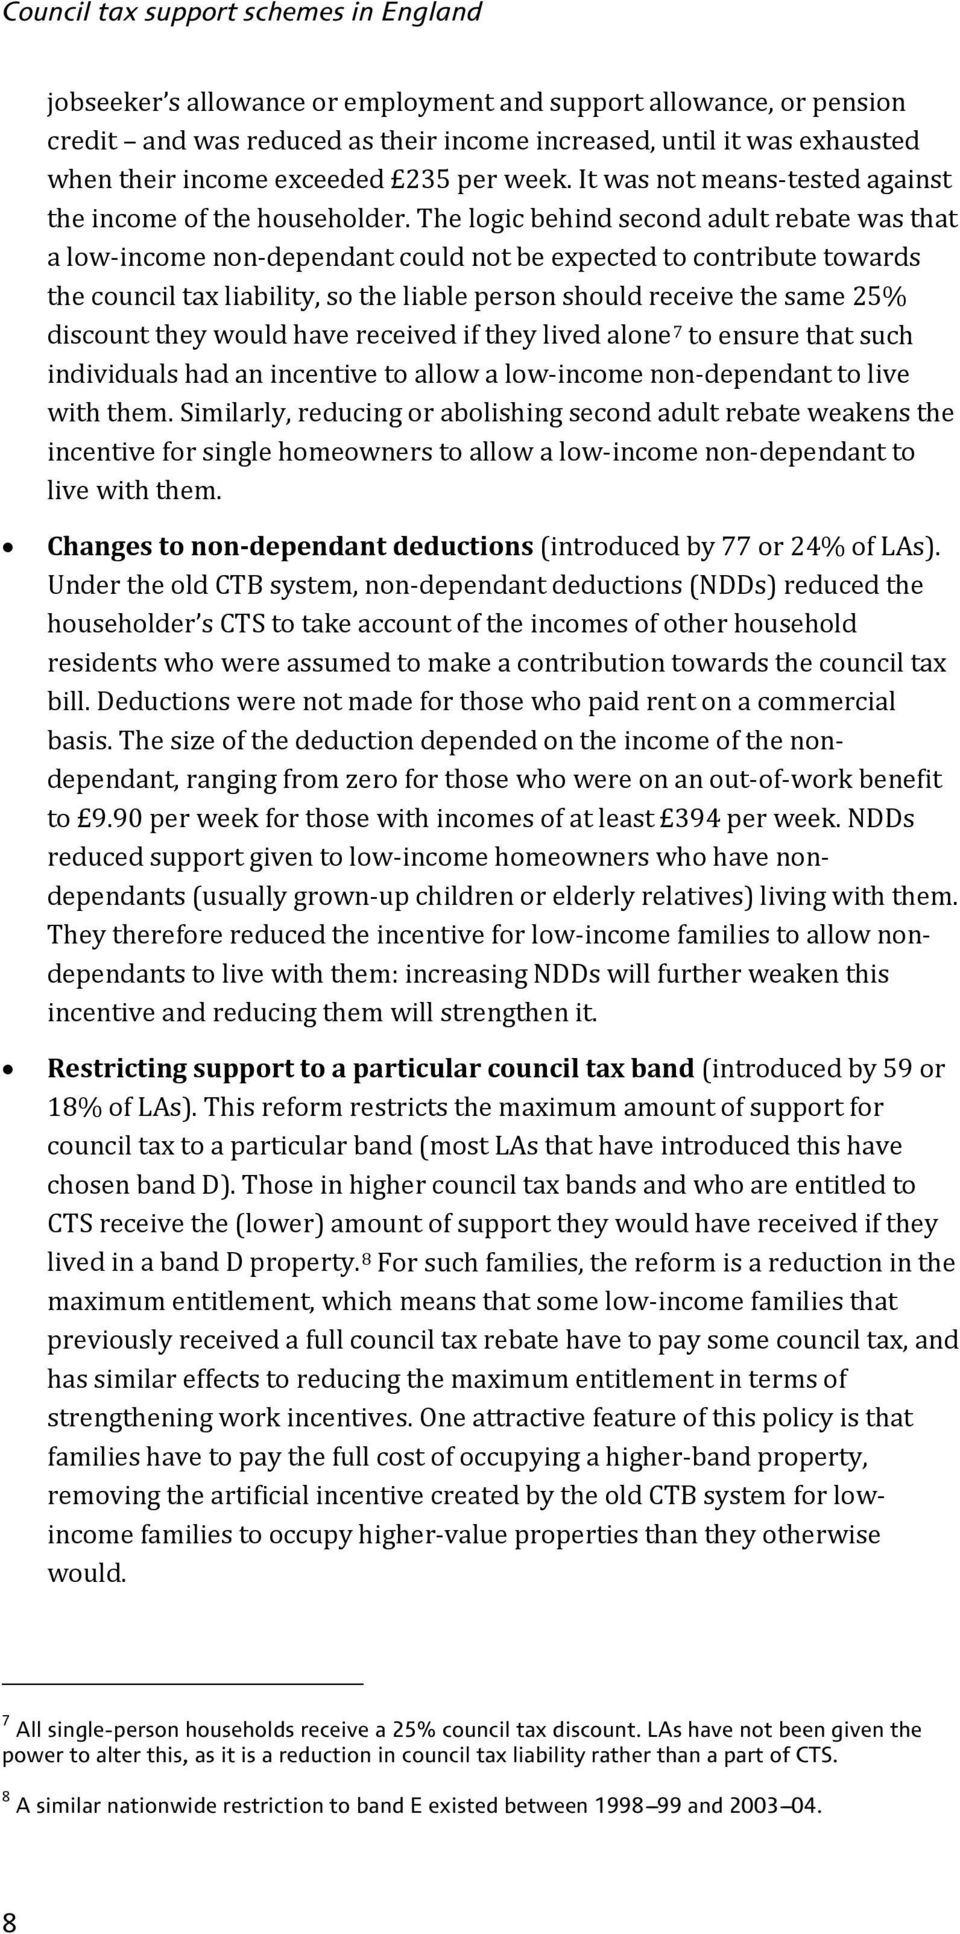 The logic behind second adult rebate was that a low-income non-dependant could not be expected to contribute towards the council tax liability, so the liable person should receive the same 25%